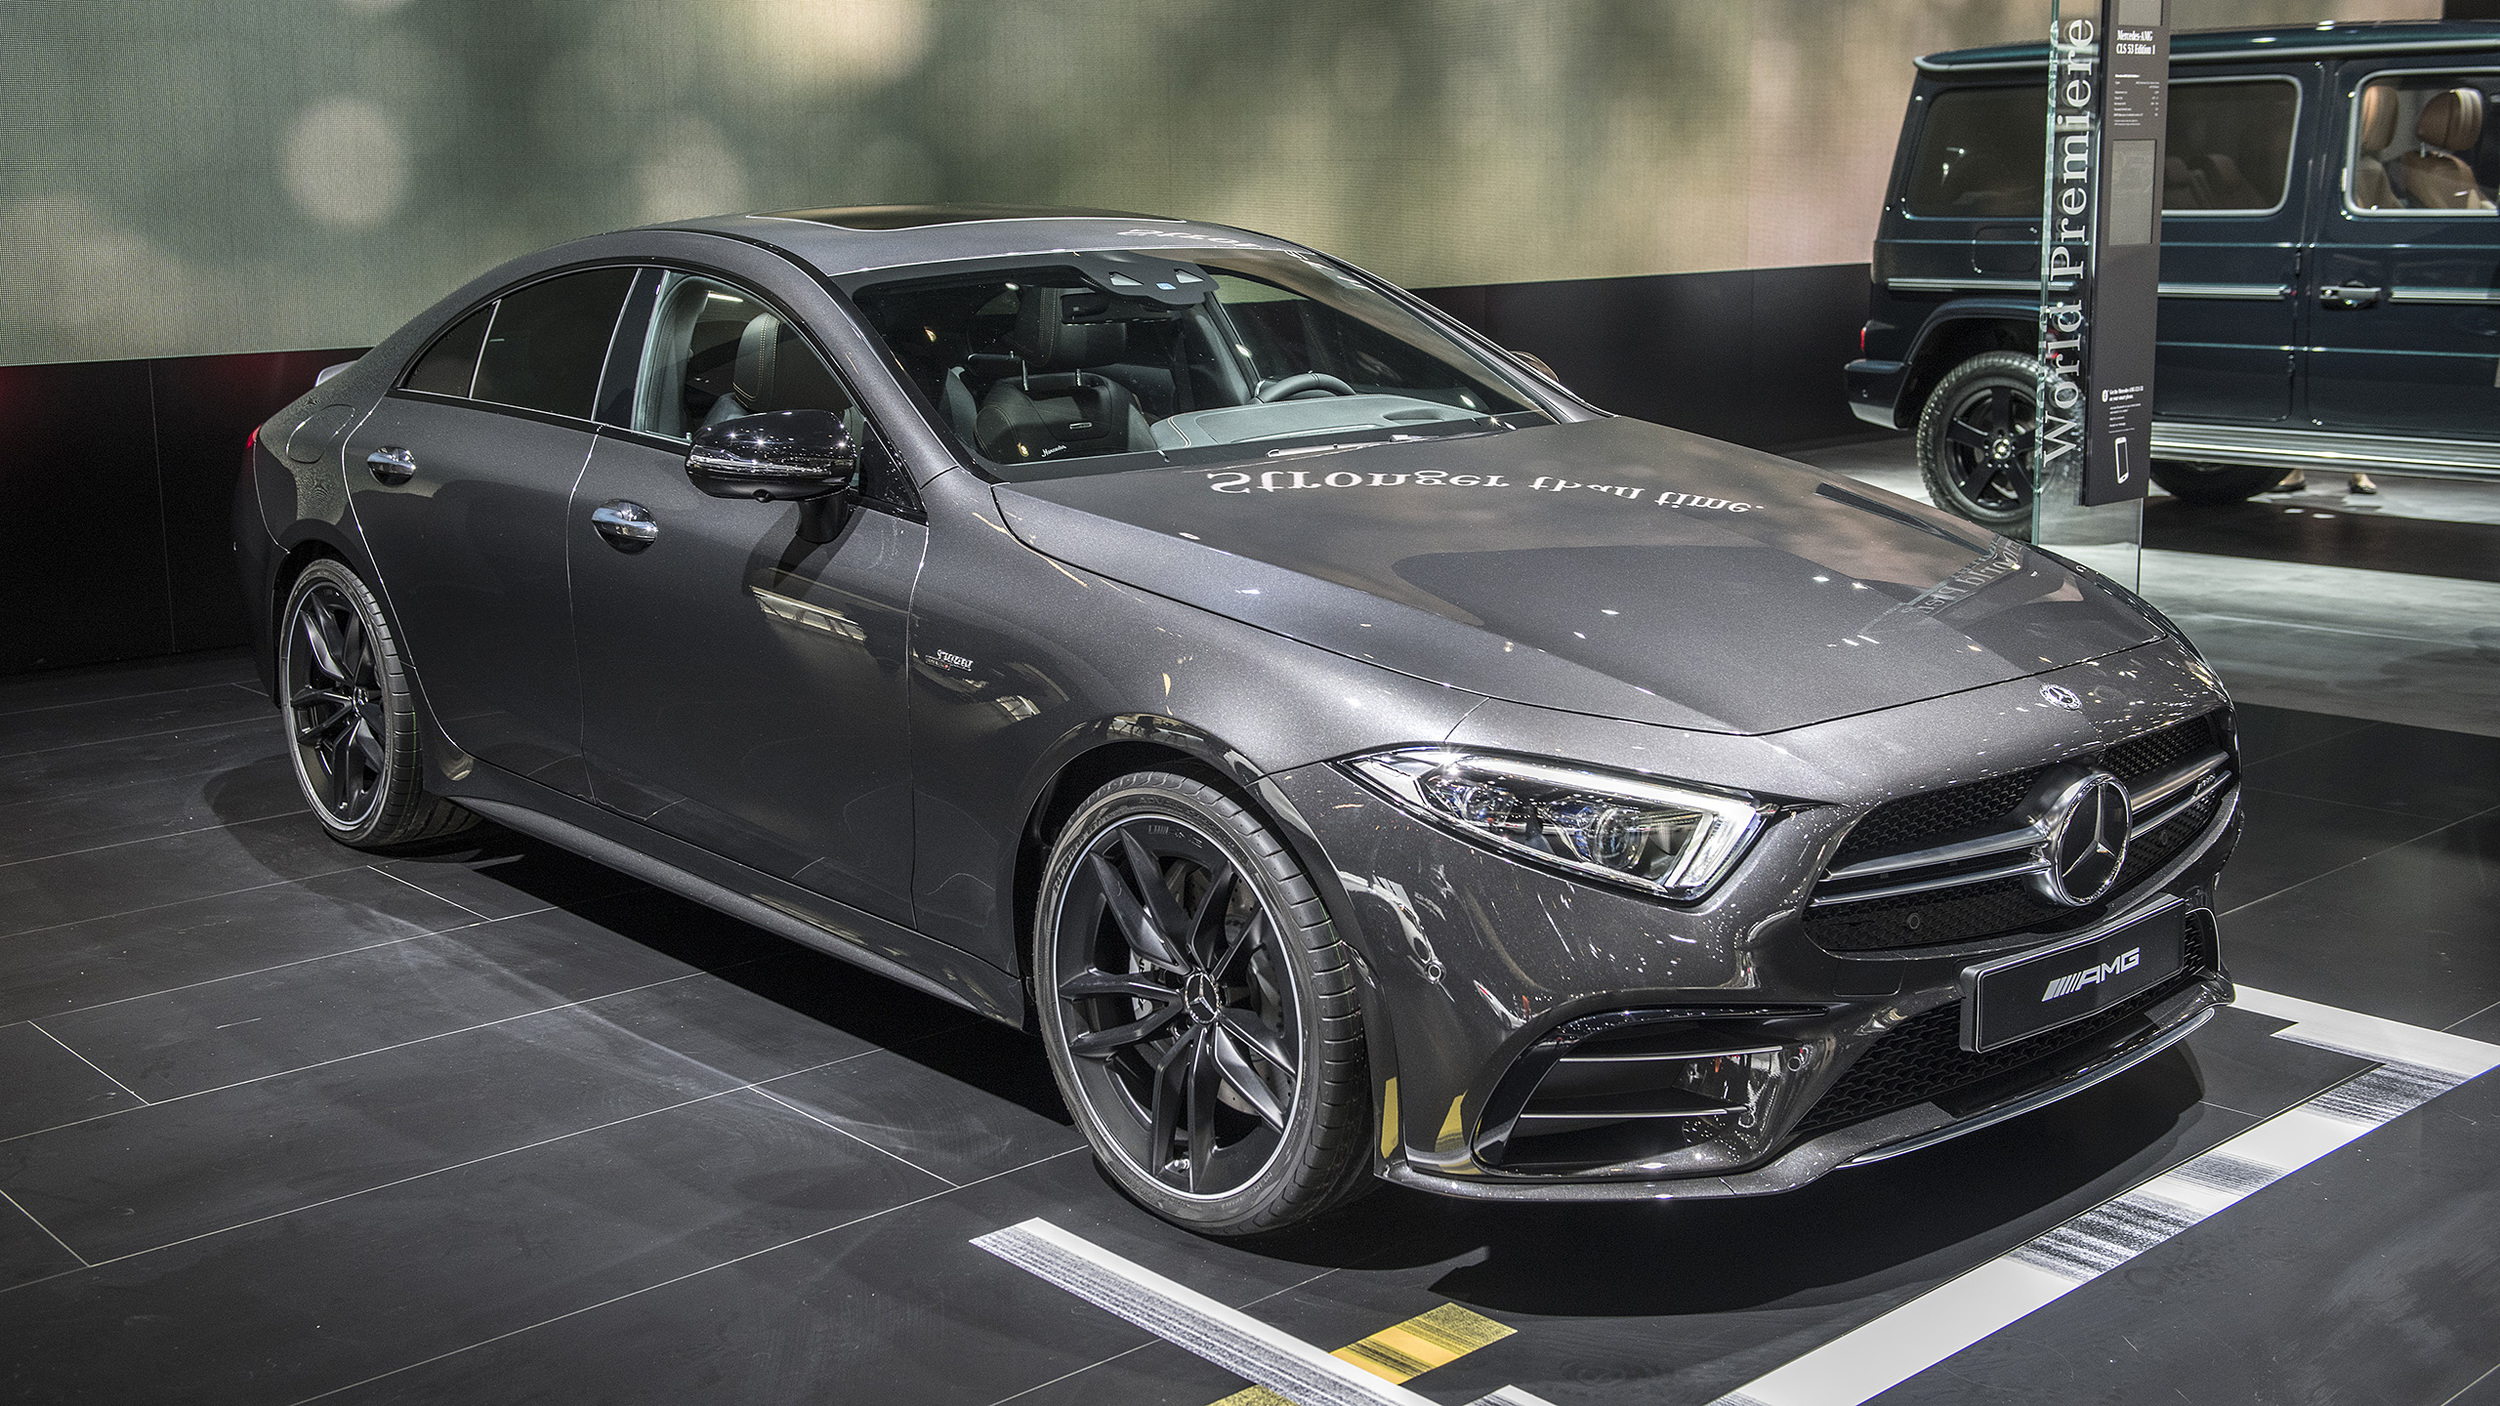 2019 mercedes amg cls53 detroit 2018 autoblog. Black Bedroom Furniture Sets. Home Design Ideas